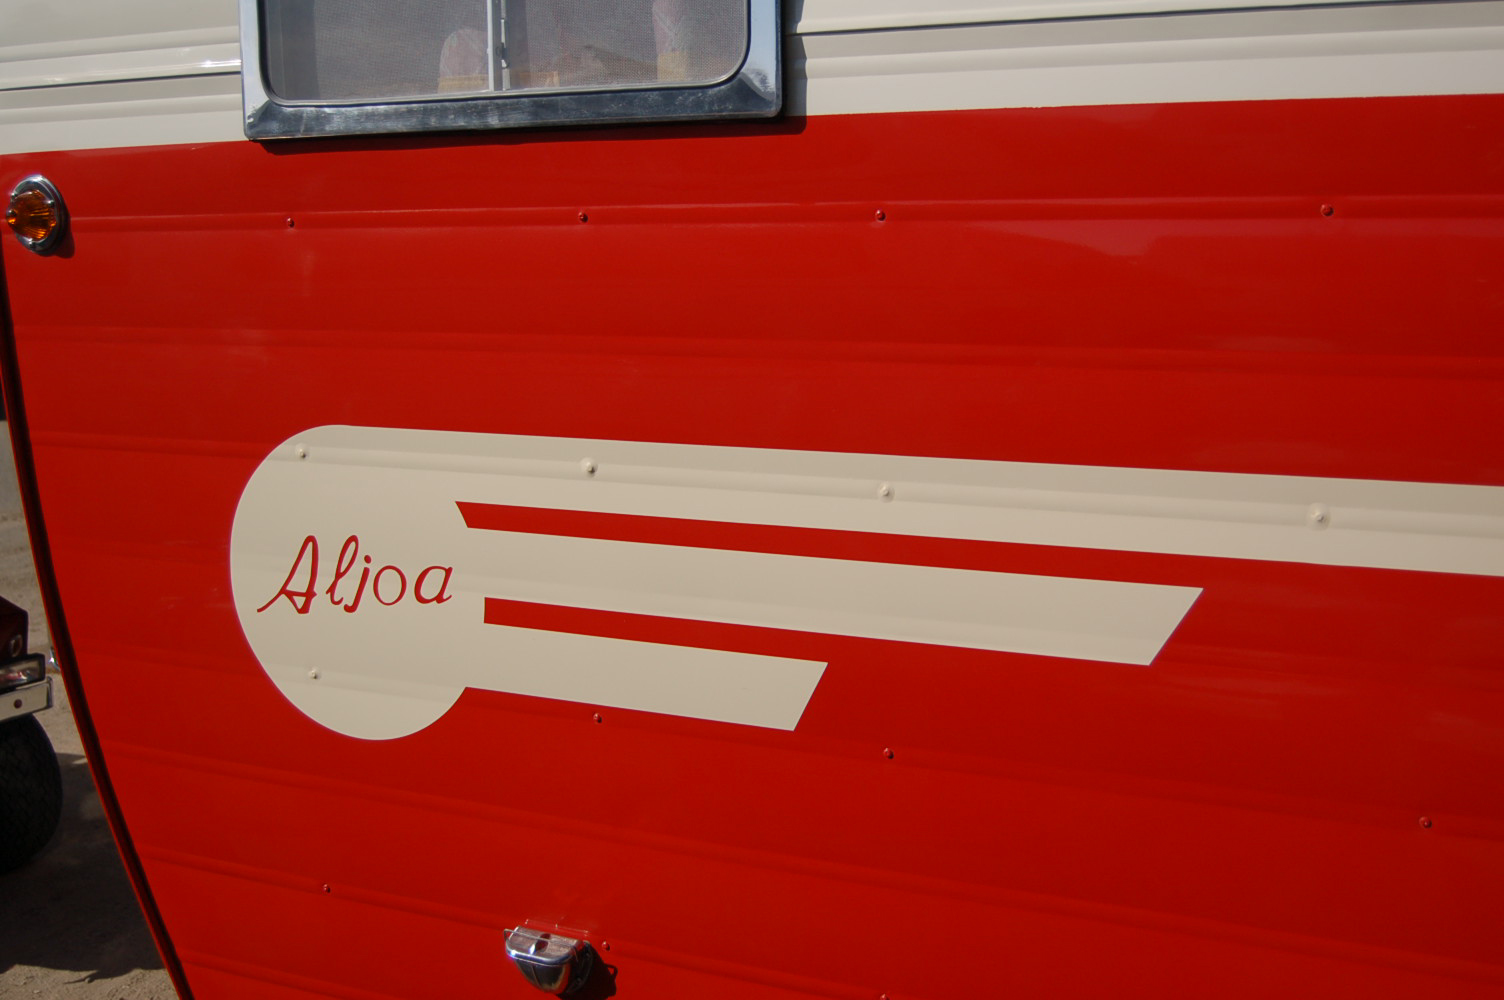 Striking Aljoa Logo Painted On The Side Of A Vintage 1955 Trailer